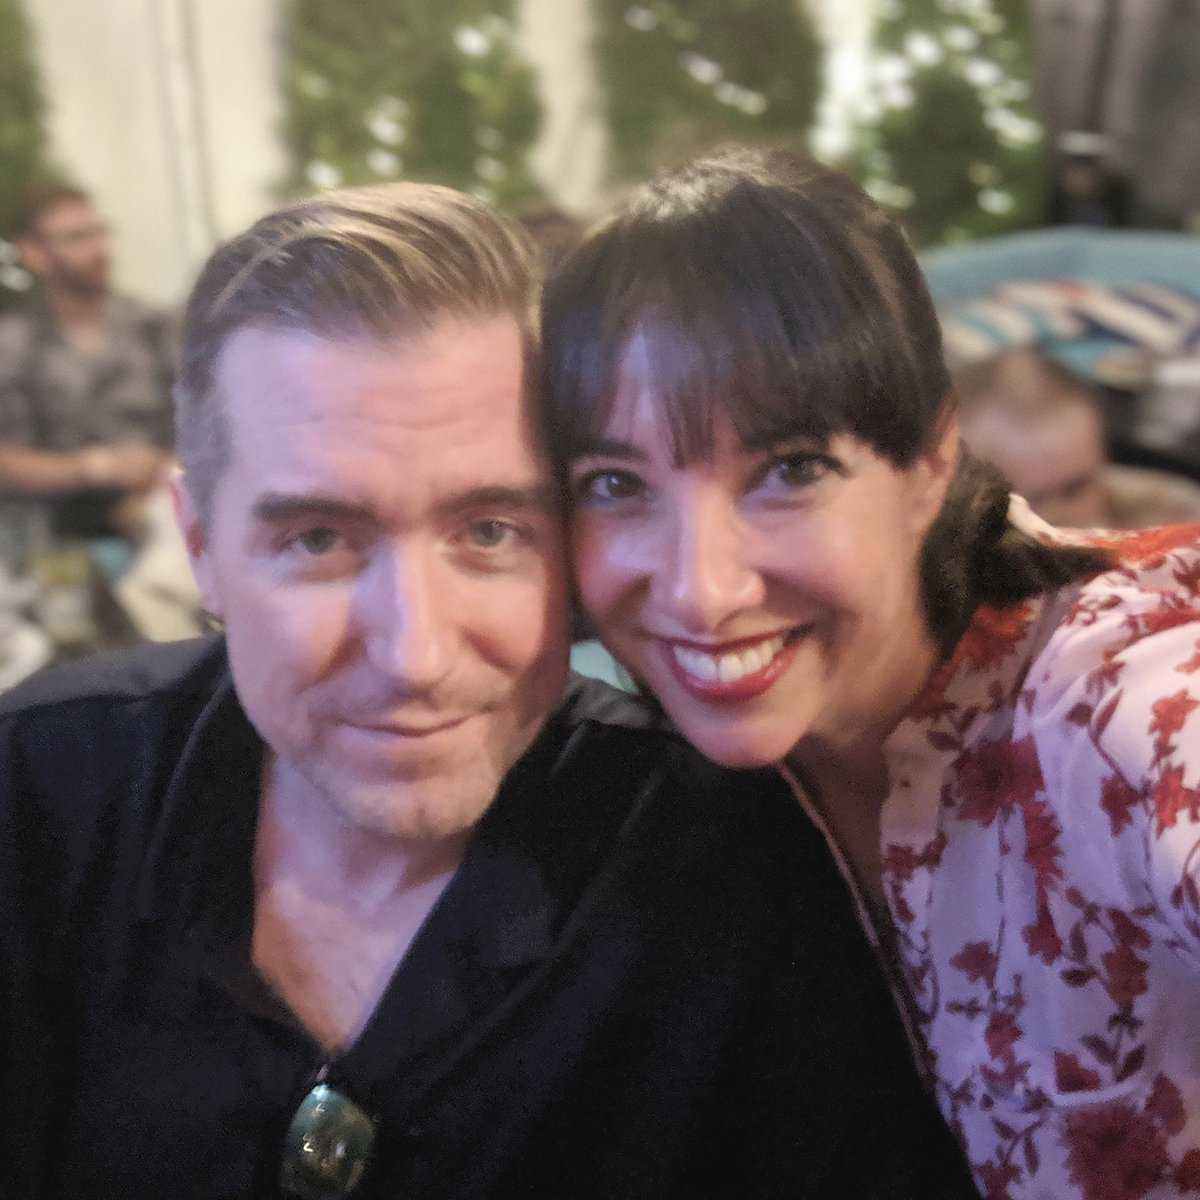 A wonderful evening celebrating @thegifttheatre #seasonreleasebash! Thank you Artistic Director & co-founder @ThorntonMPT for reminding me why stepping into the light to share a part of our souls is such a vital way to connect with people & them to each other with joy. <br>http://pic.twitter.com/660jjRDtRo